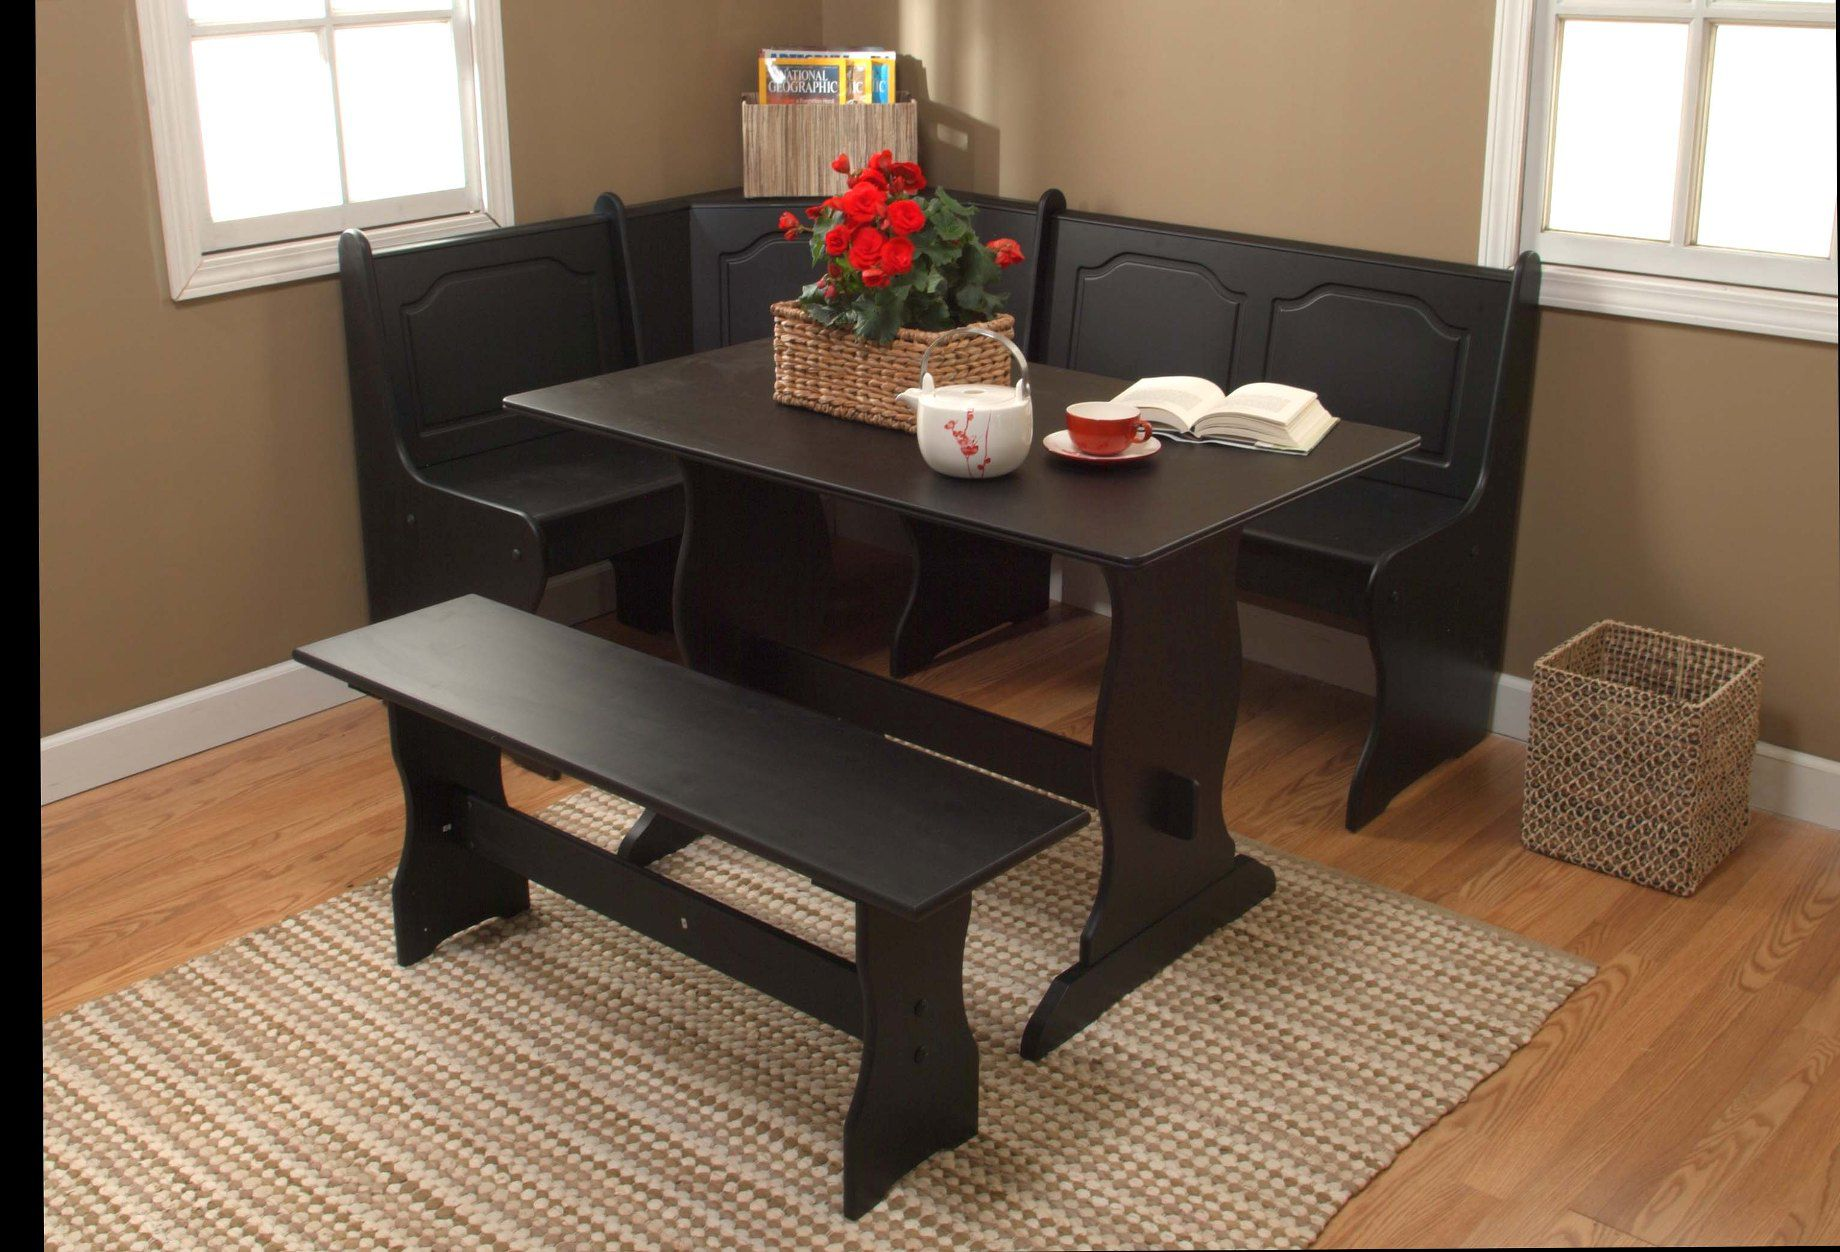 3 Pc. Nook Dining Set - Black